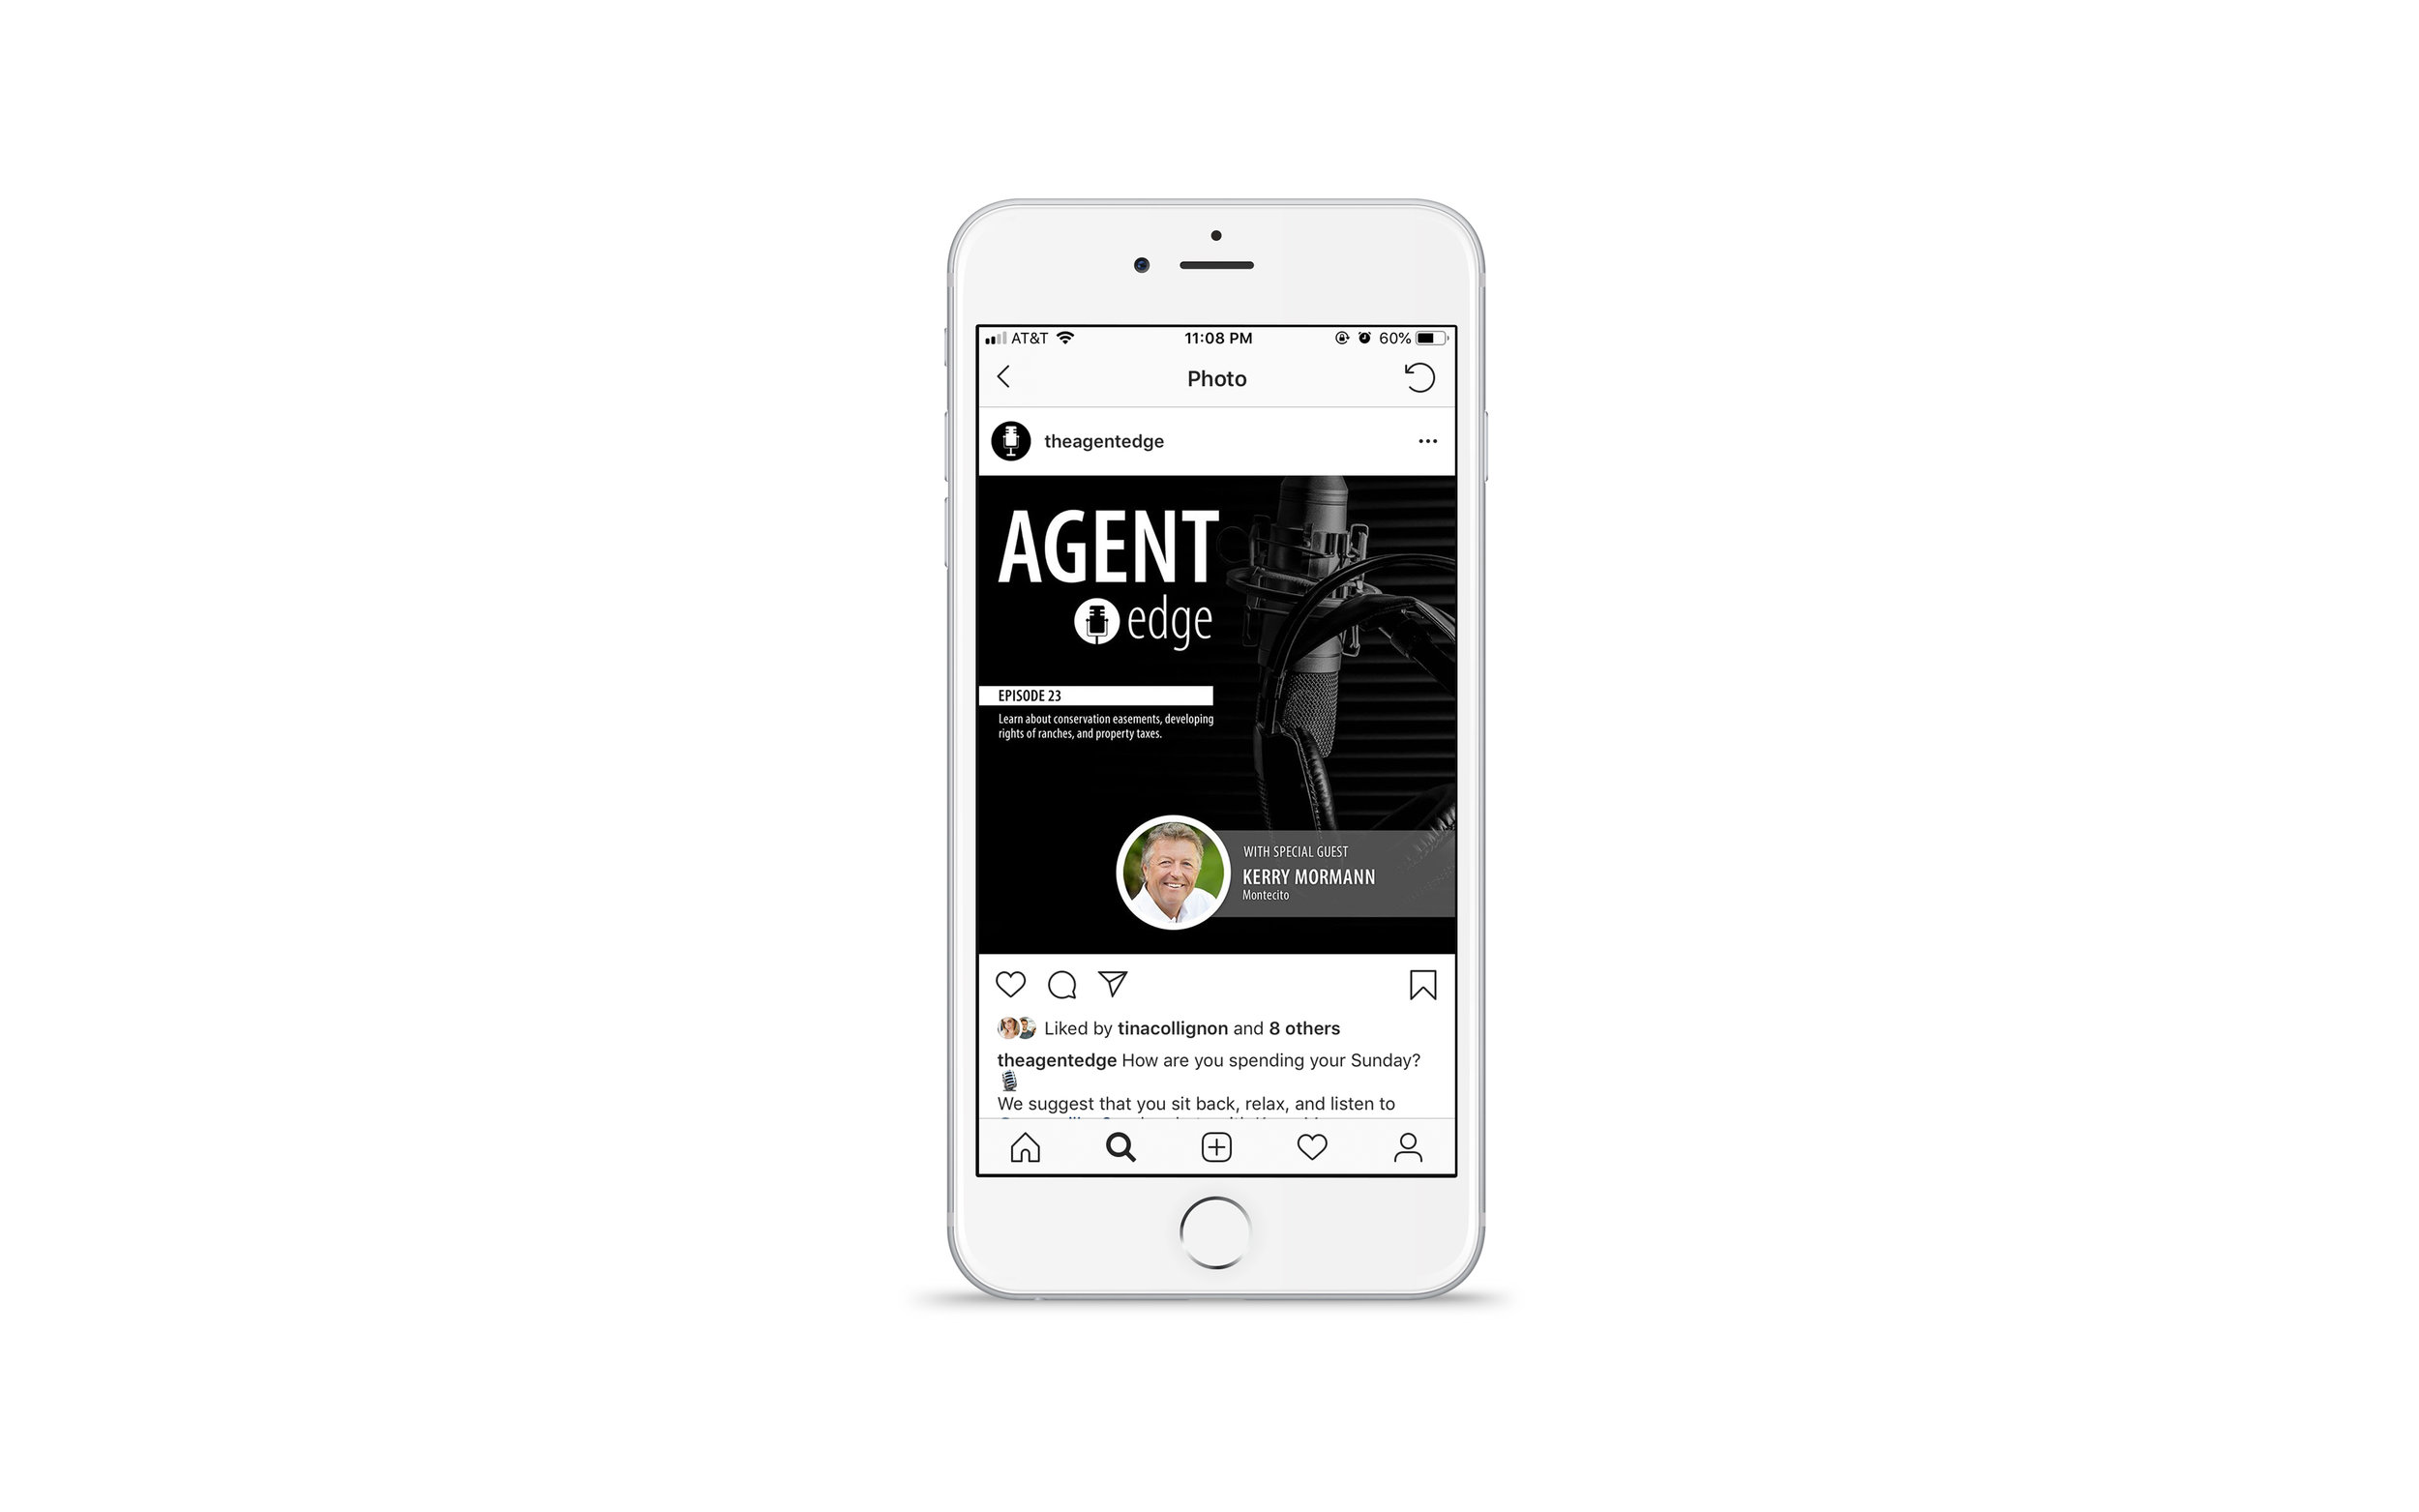 iPhone-mockup_agent-edge-1.jpg